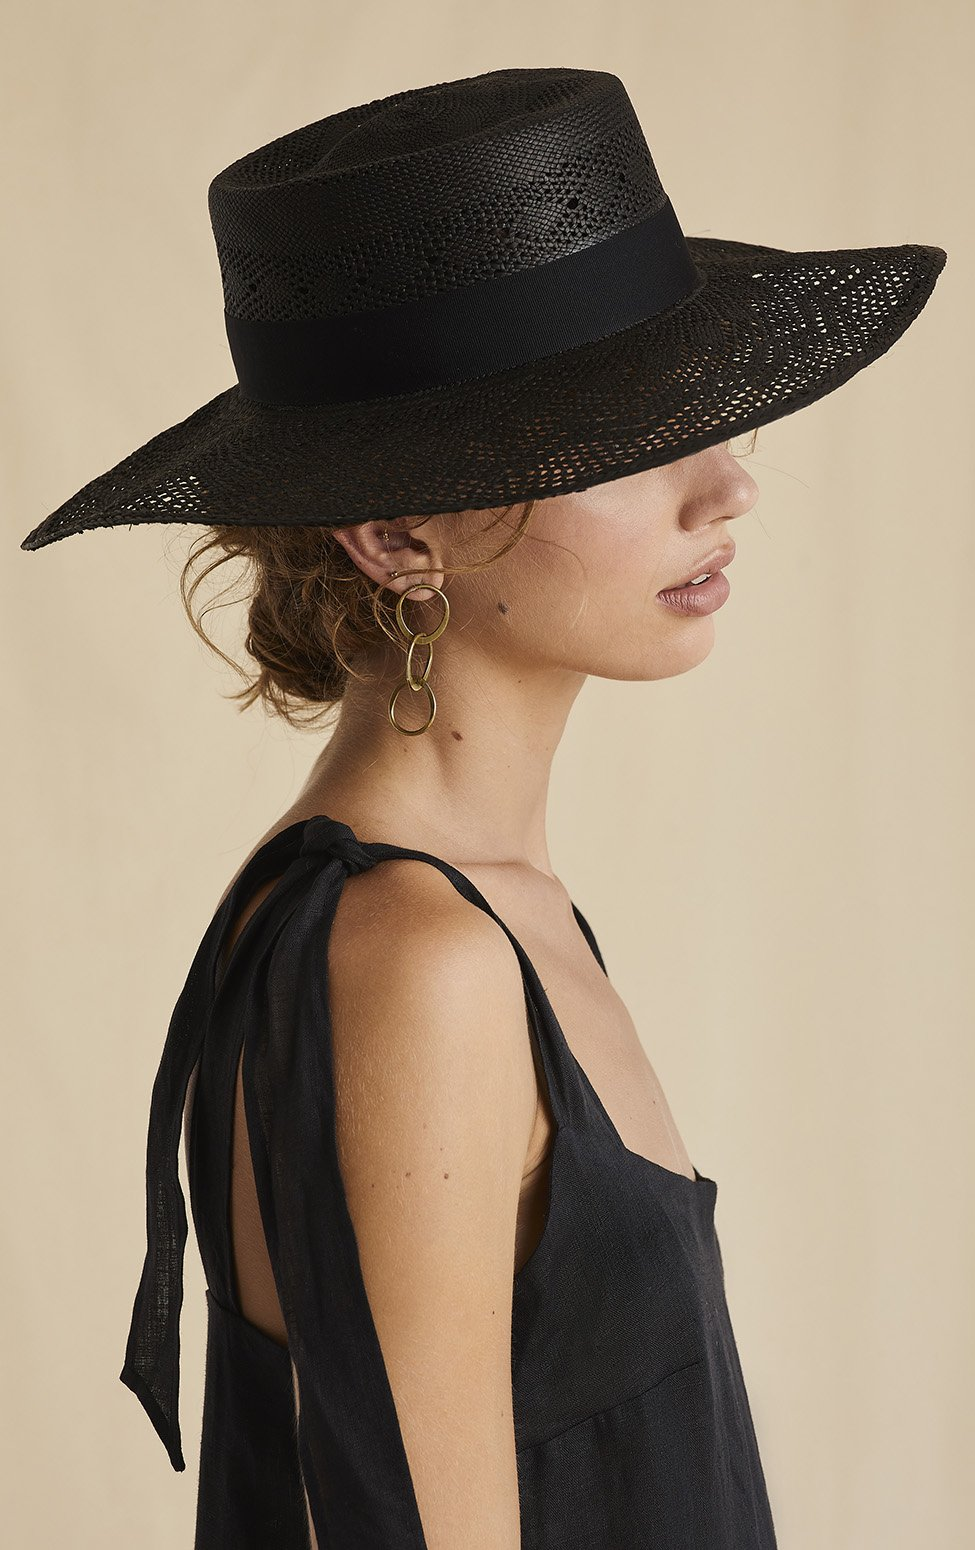 'To The Races' Boater style hat ethical hats Sarah J Curtis